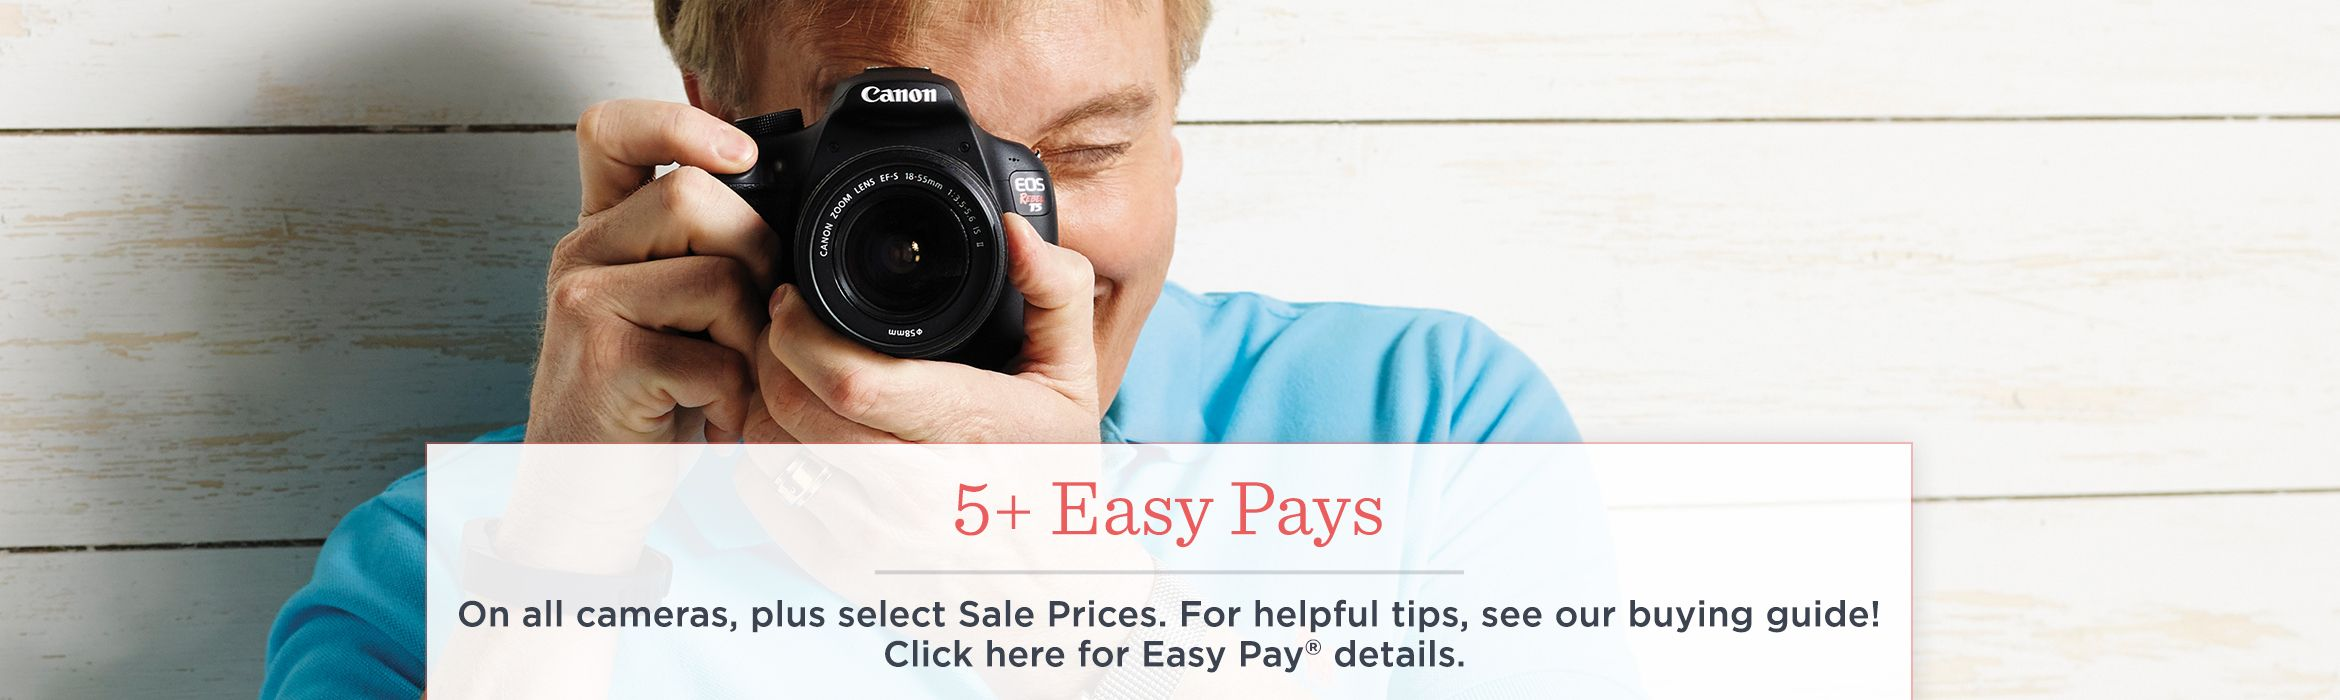 5+ Easy Pays   On all cameras, plus select Sale Prices. For helpful tips, see our buying guide!  Click here for Easy Pay® details.